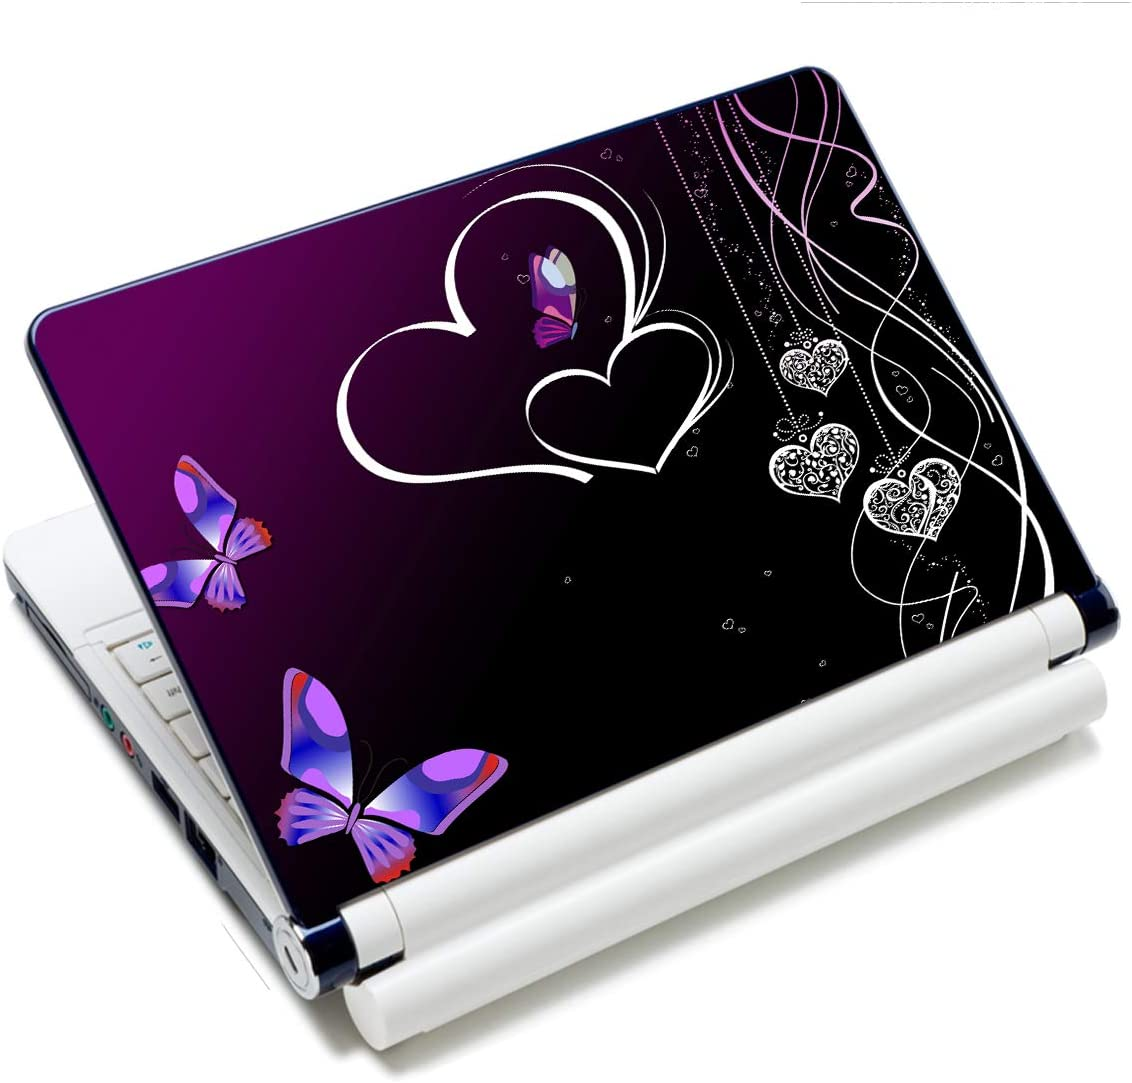 Laptop Stickers Decal,12 13 14 15 15.6 inches Netbook Laptop Skin Sticker Reusable Protector Cover Case for Toshiba Hp Samsung Dell Apple Acer Leonovo Sony Asus Laptop Notebook (Butterfly & Hearts)